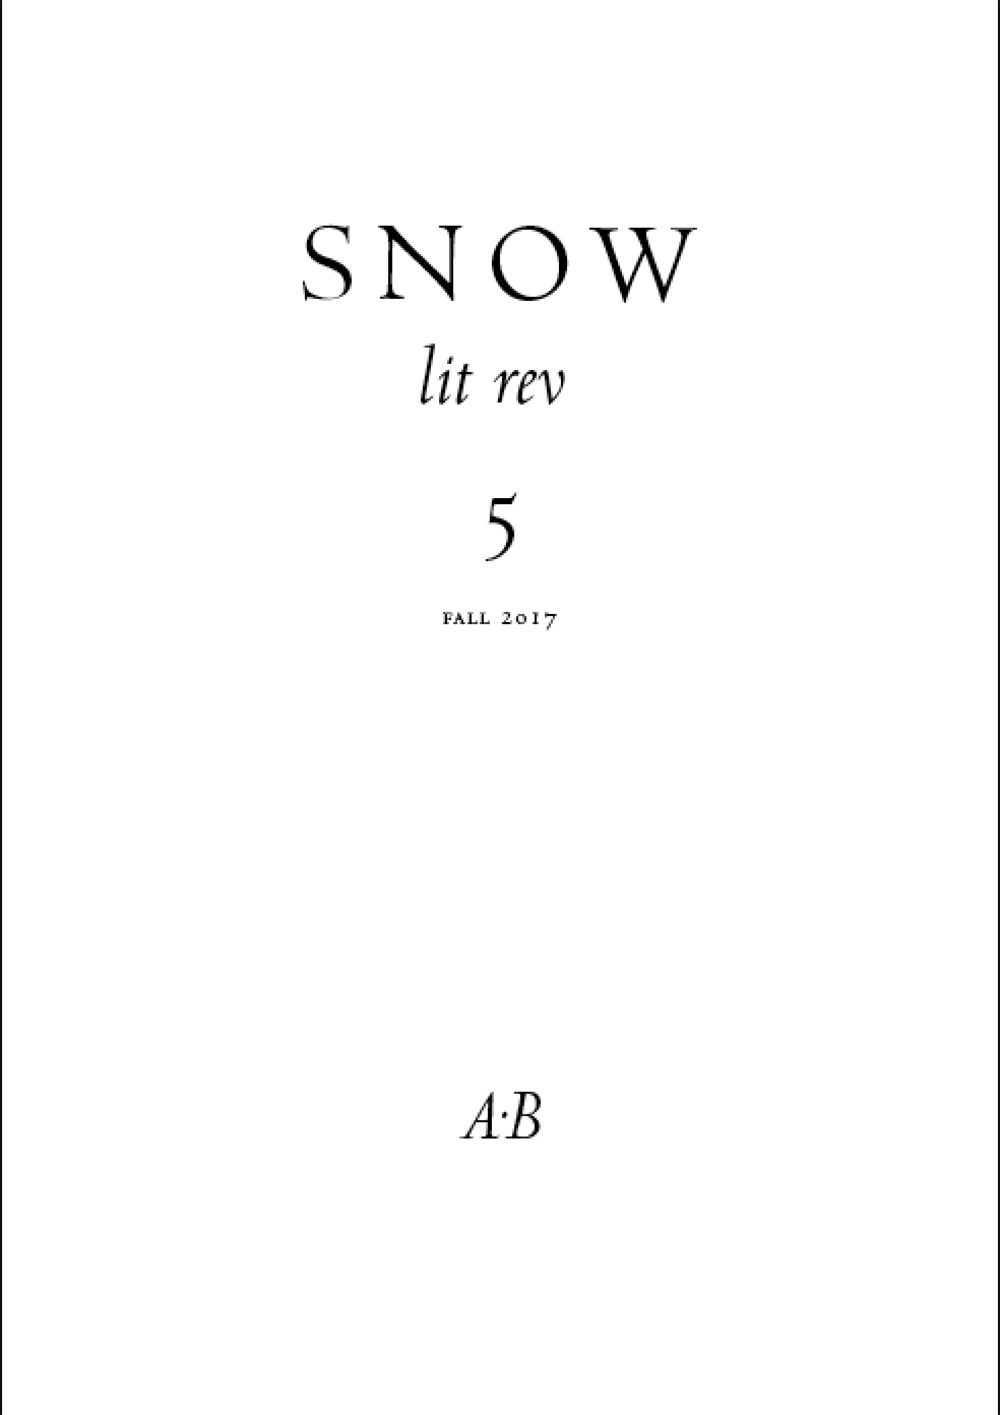 Snow lit rev, no. 5